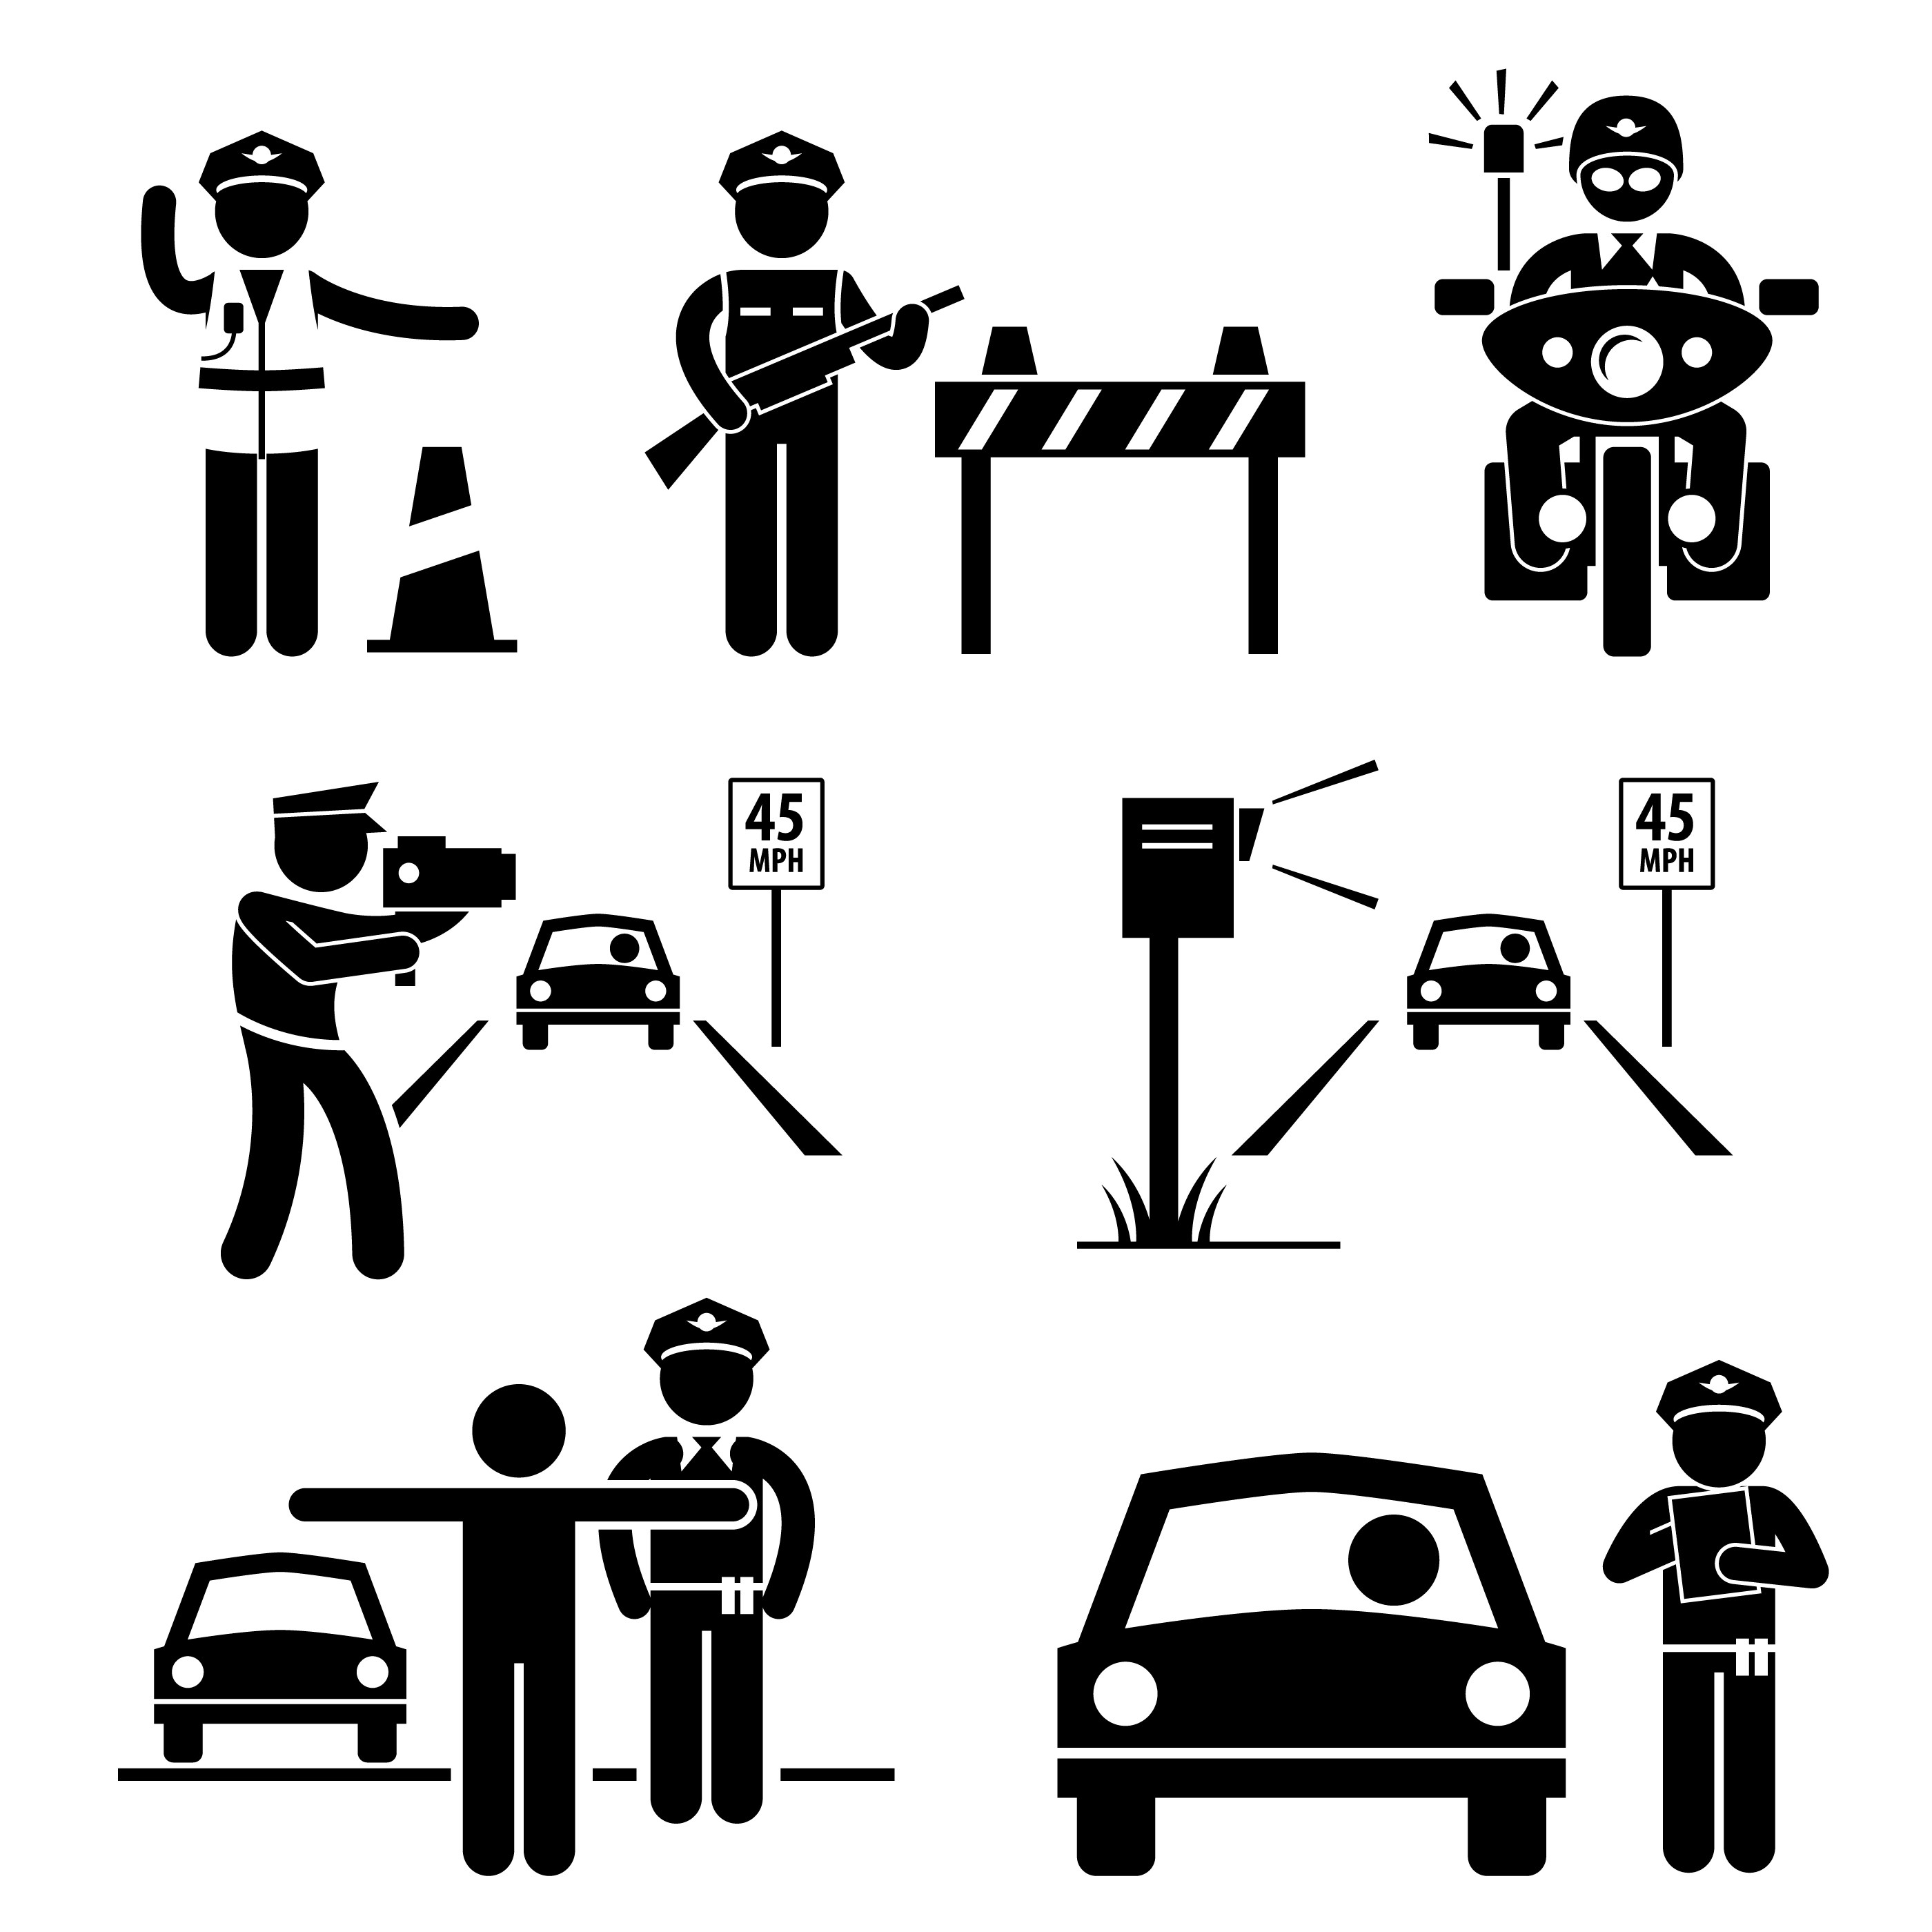 Police Officer Traffic On Duty Stick Figure Pictogram Icon